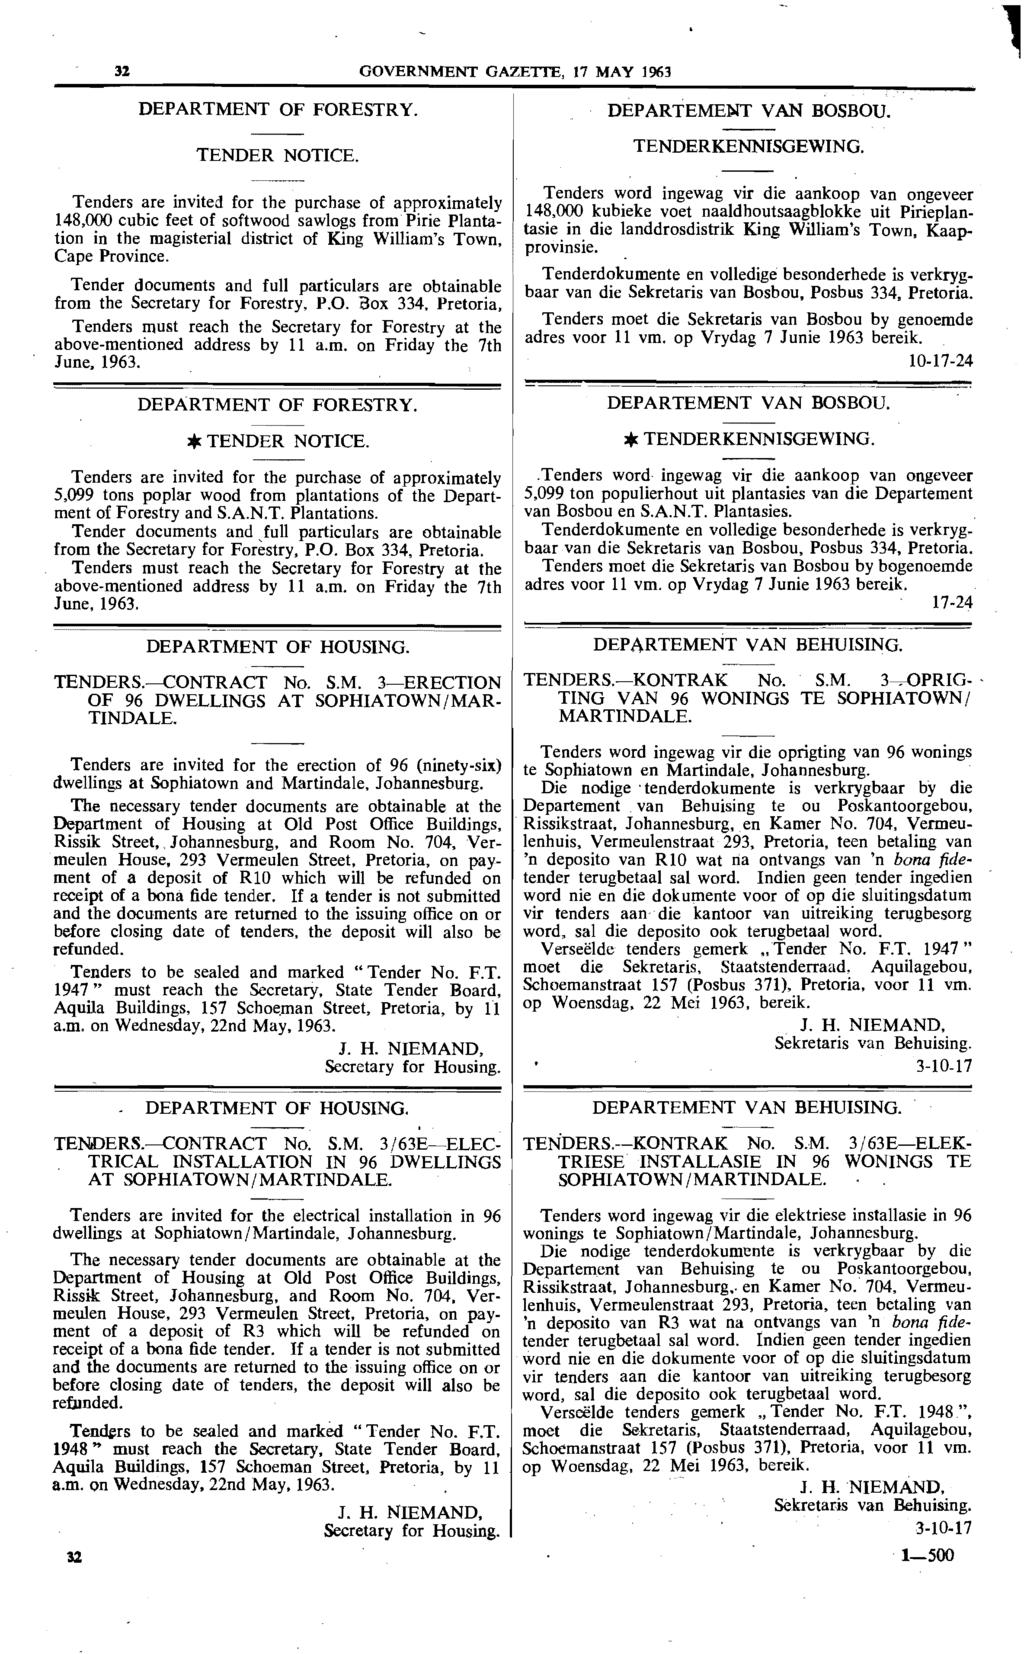 31 GOVERNMENT GAZETrE, 17 MAY 1963 DEPARTMENT OF FORESTRY. TENDER NOTICE.